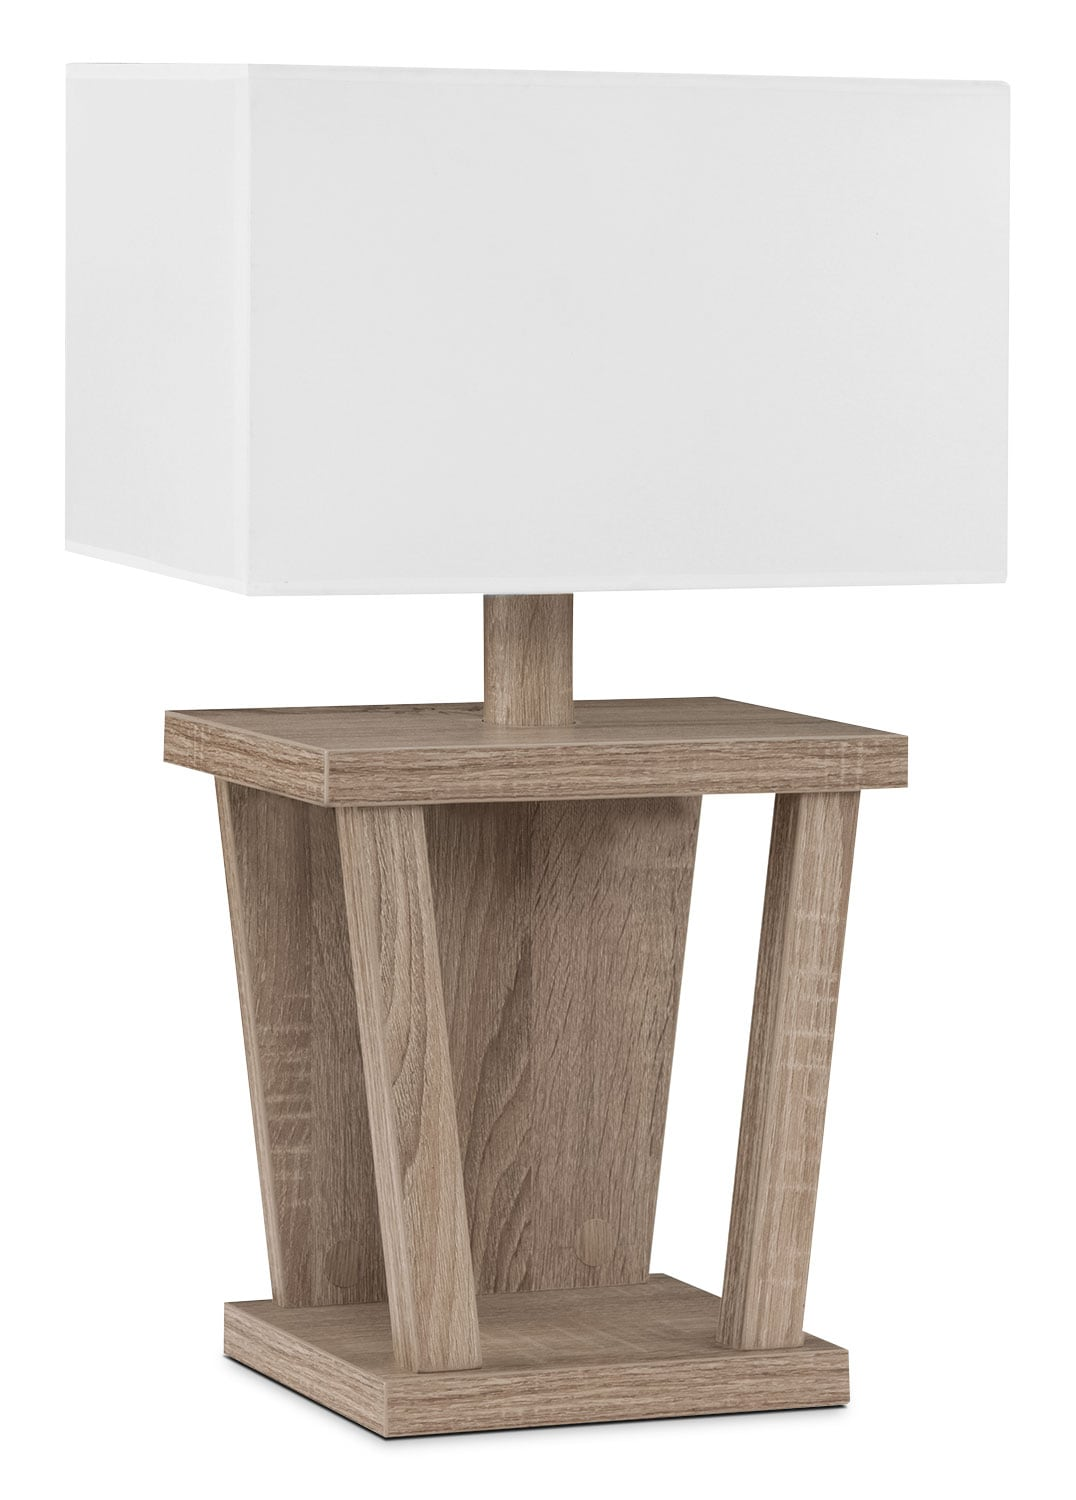 Home Accessories - Dark Taupe Table Lamp with White Shade